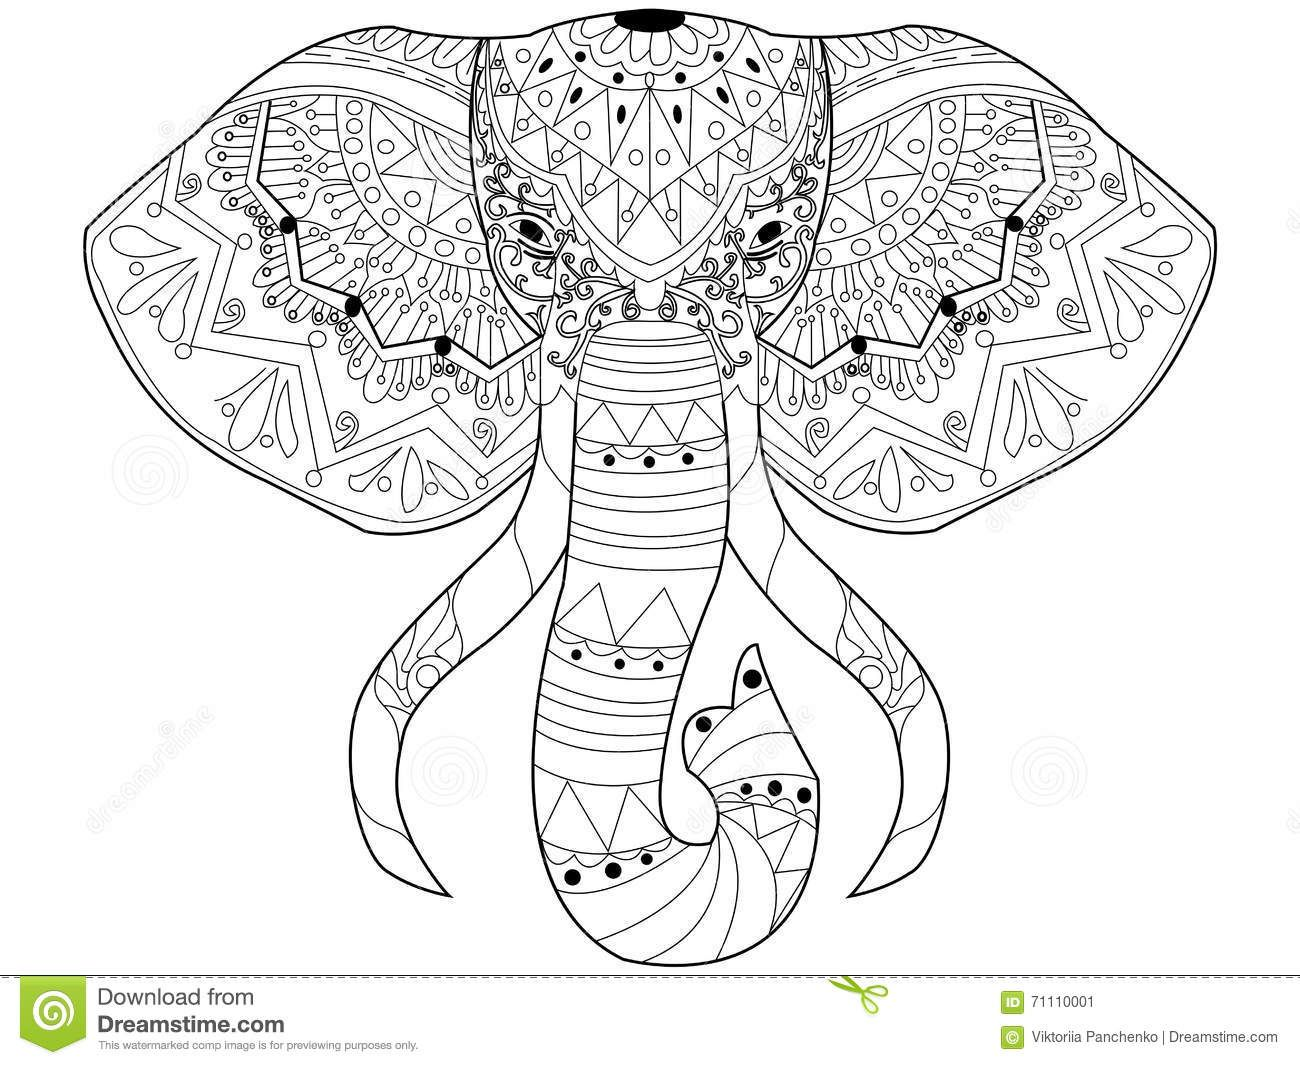 Elephant Coloring Vector For Adults Stock Vector - Image: 71110001 ...